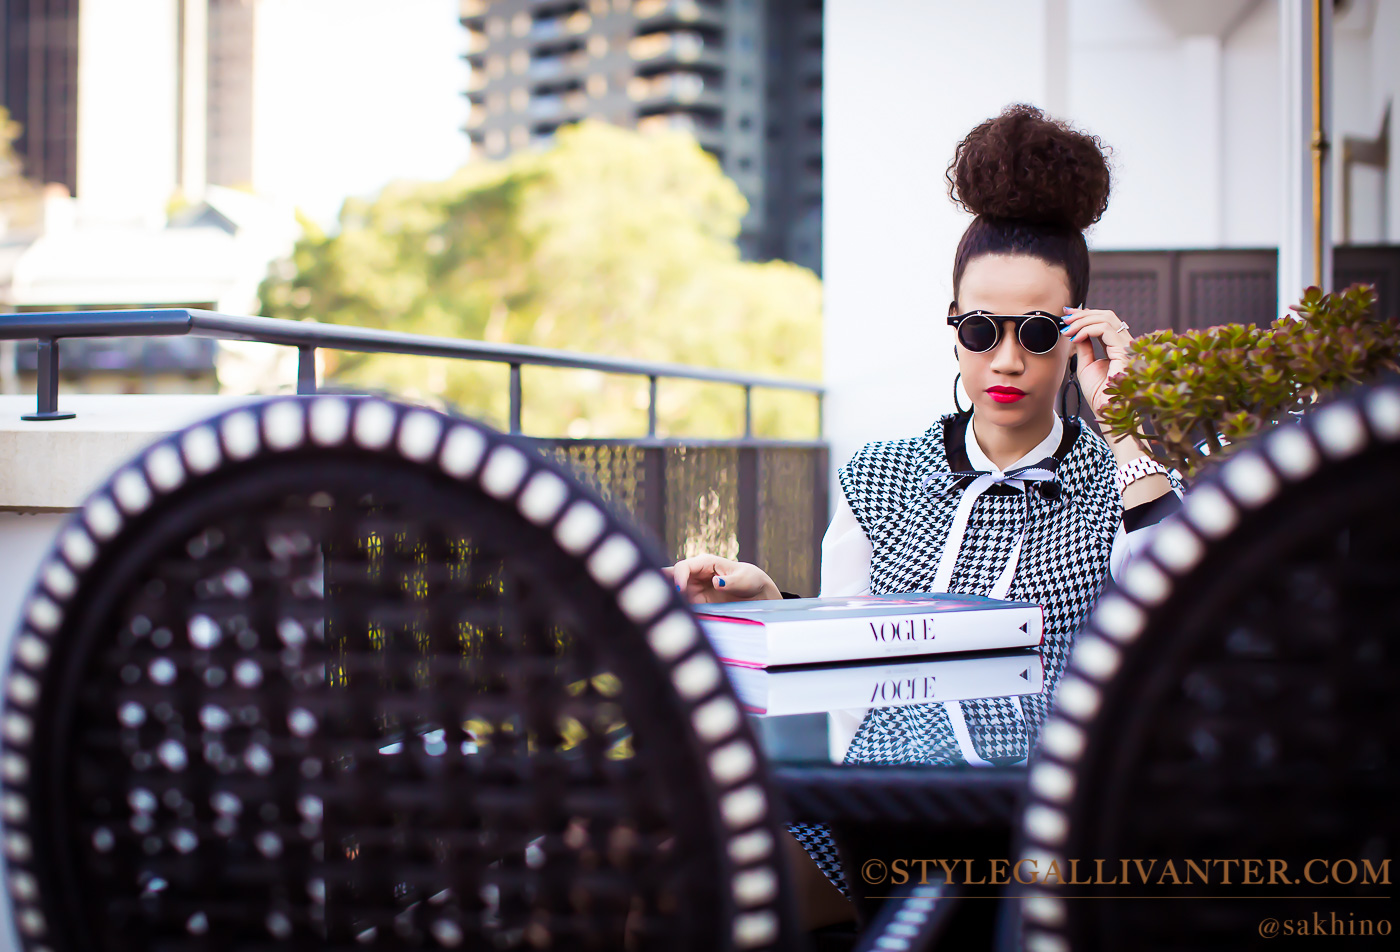 houndstooth-trends-2016_style-gallivanter-2016_top-bloggers-london-2016_liverpool-top-best-fashion-bloggers-2016_top-natural-hair-bloggers-uk-2016_Australian-top-style-bloggers-2016-24